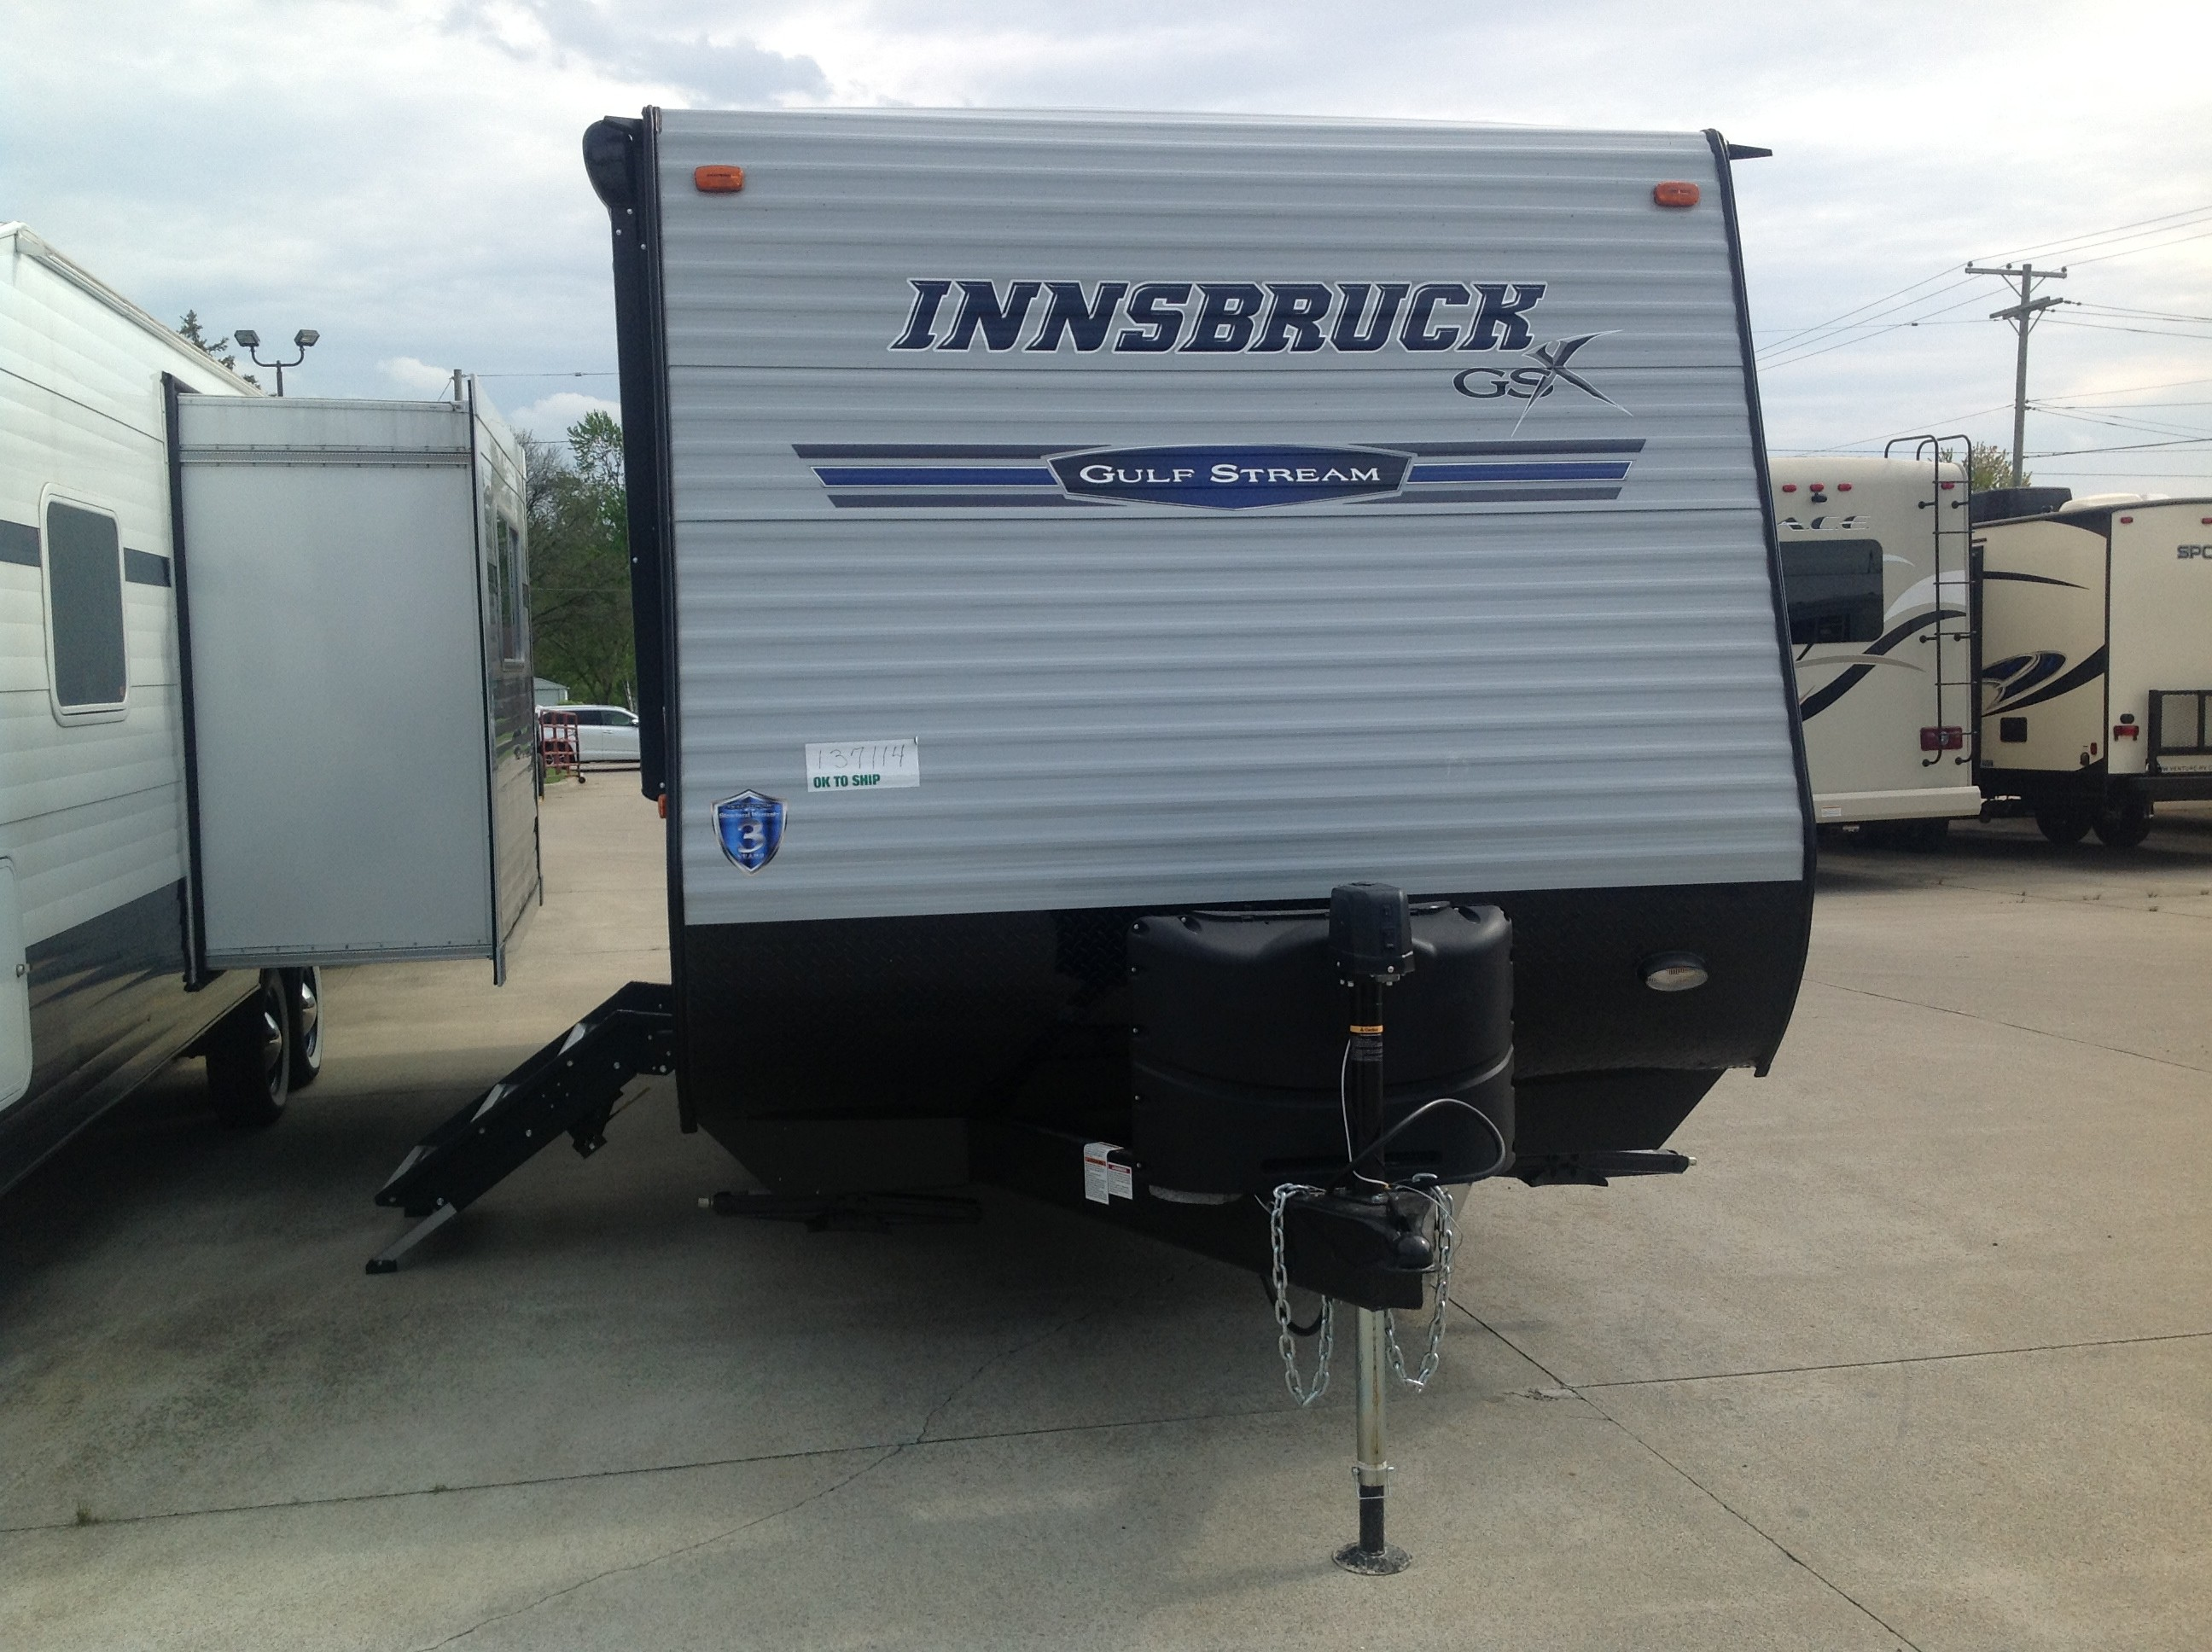 New, 2020, Gulf Stream, Innsbruck 17TH, Toy Haulers